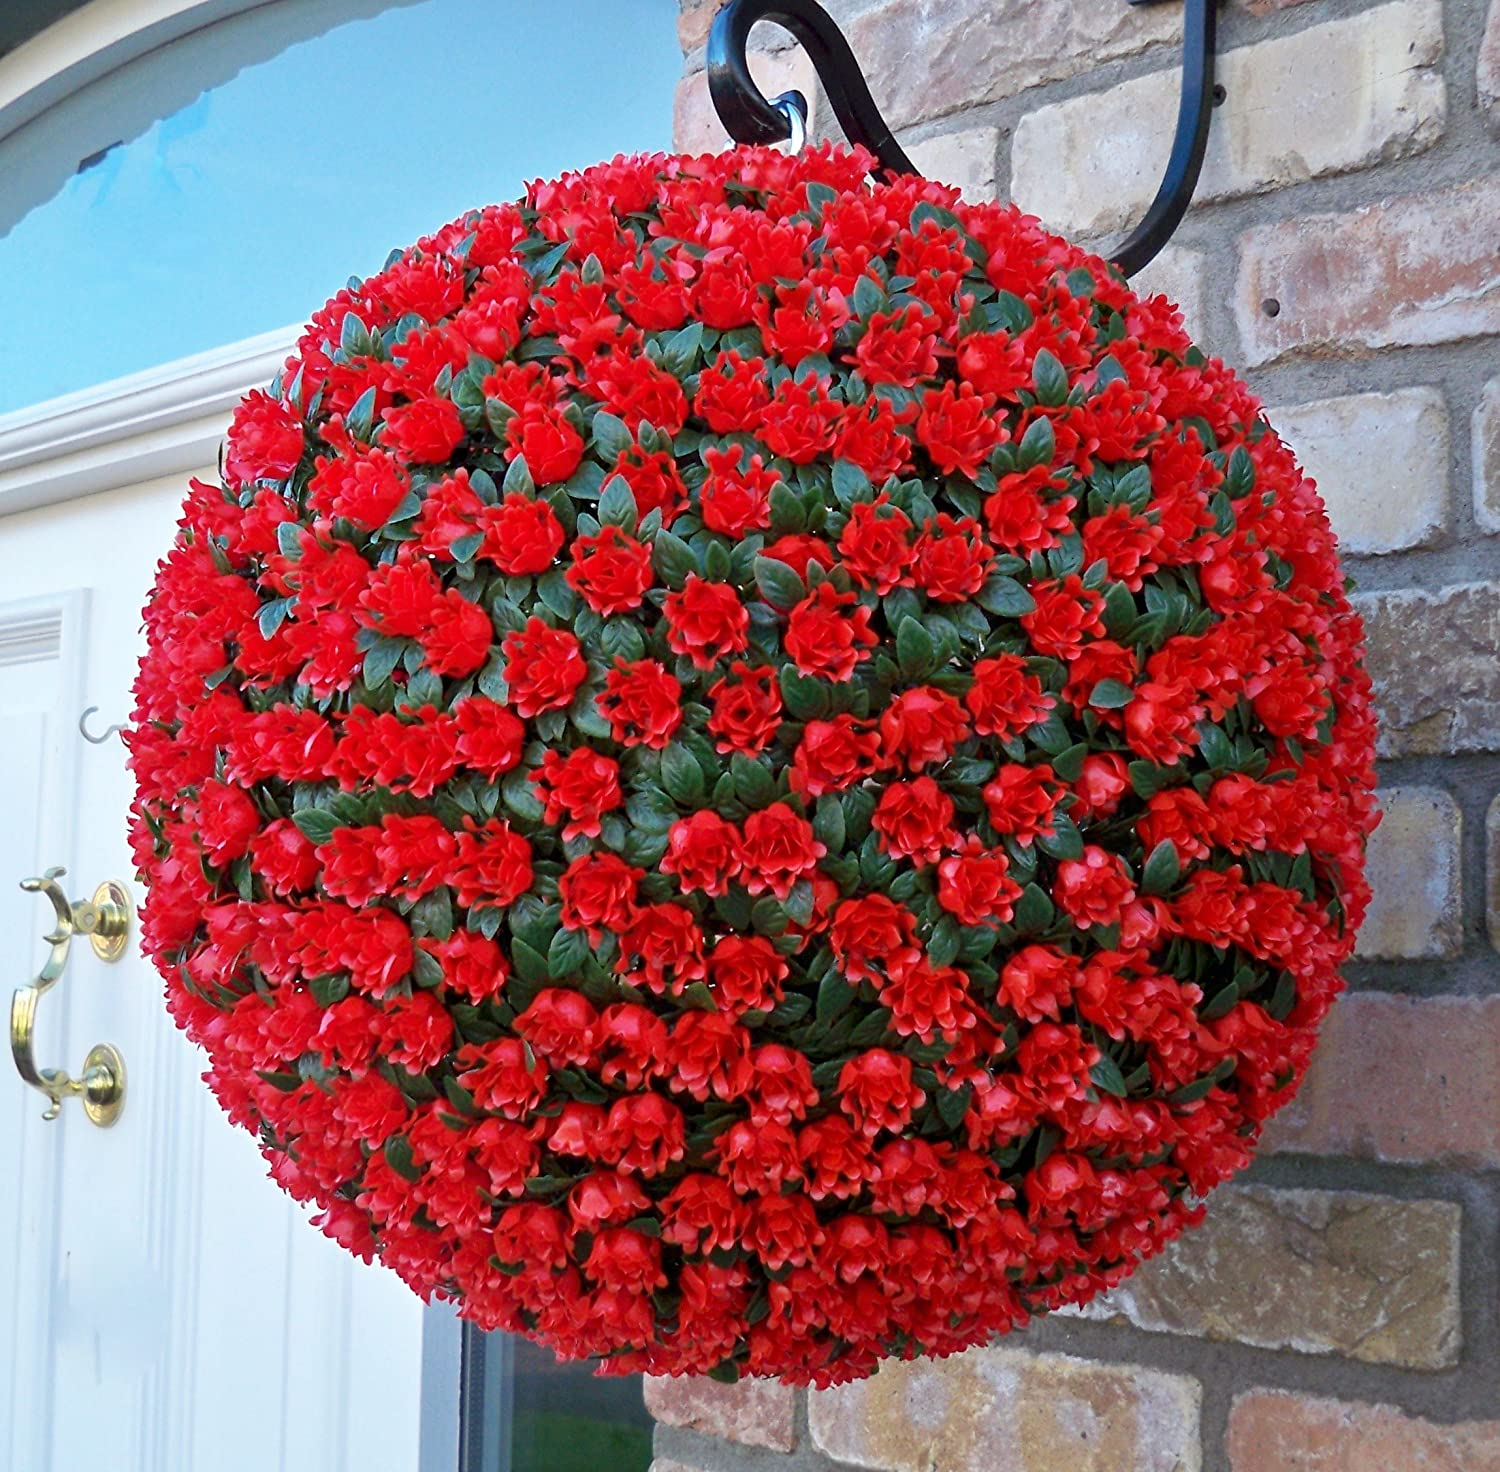 Best Artificial TM 38cm Blue Rose Topiary Hanging Flower Ball **UV Fade Protected**